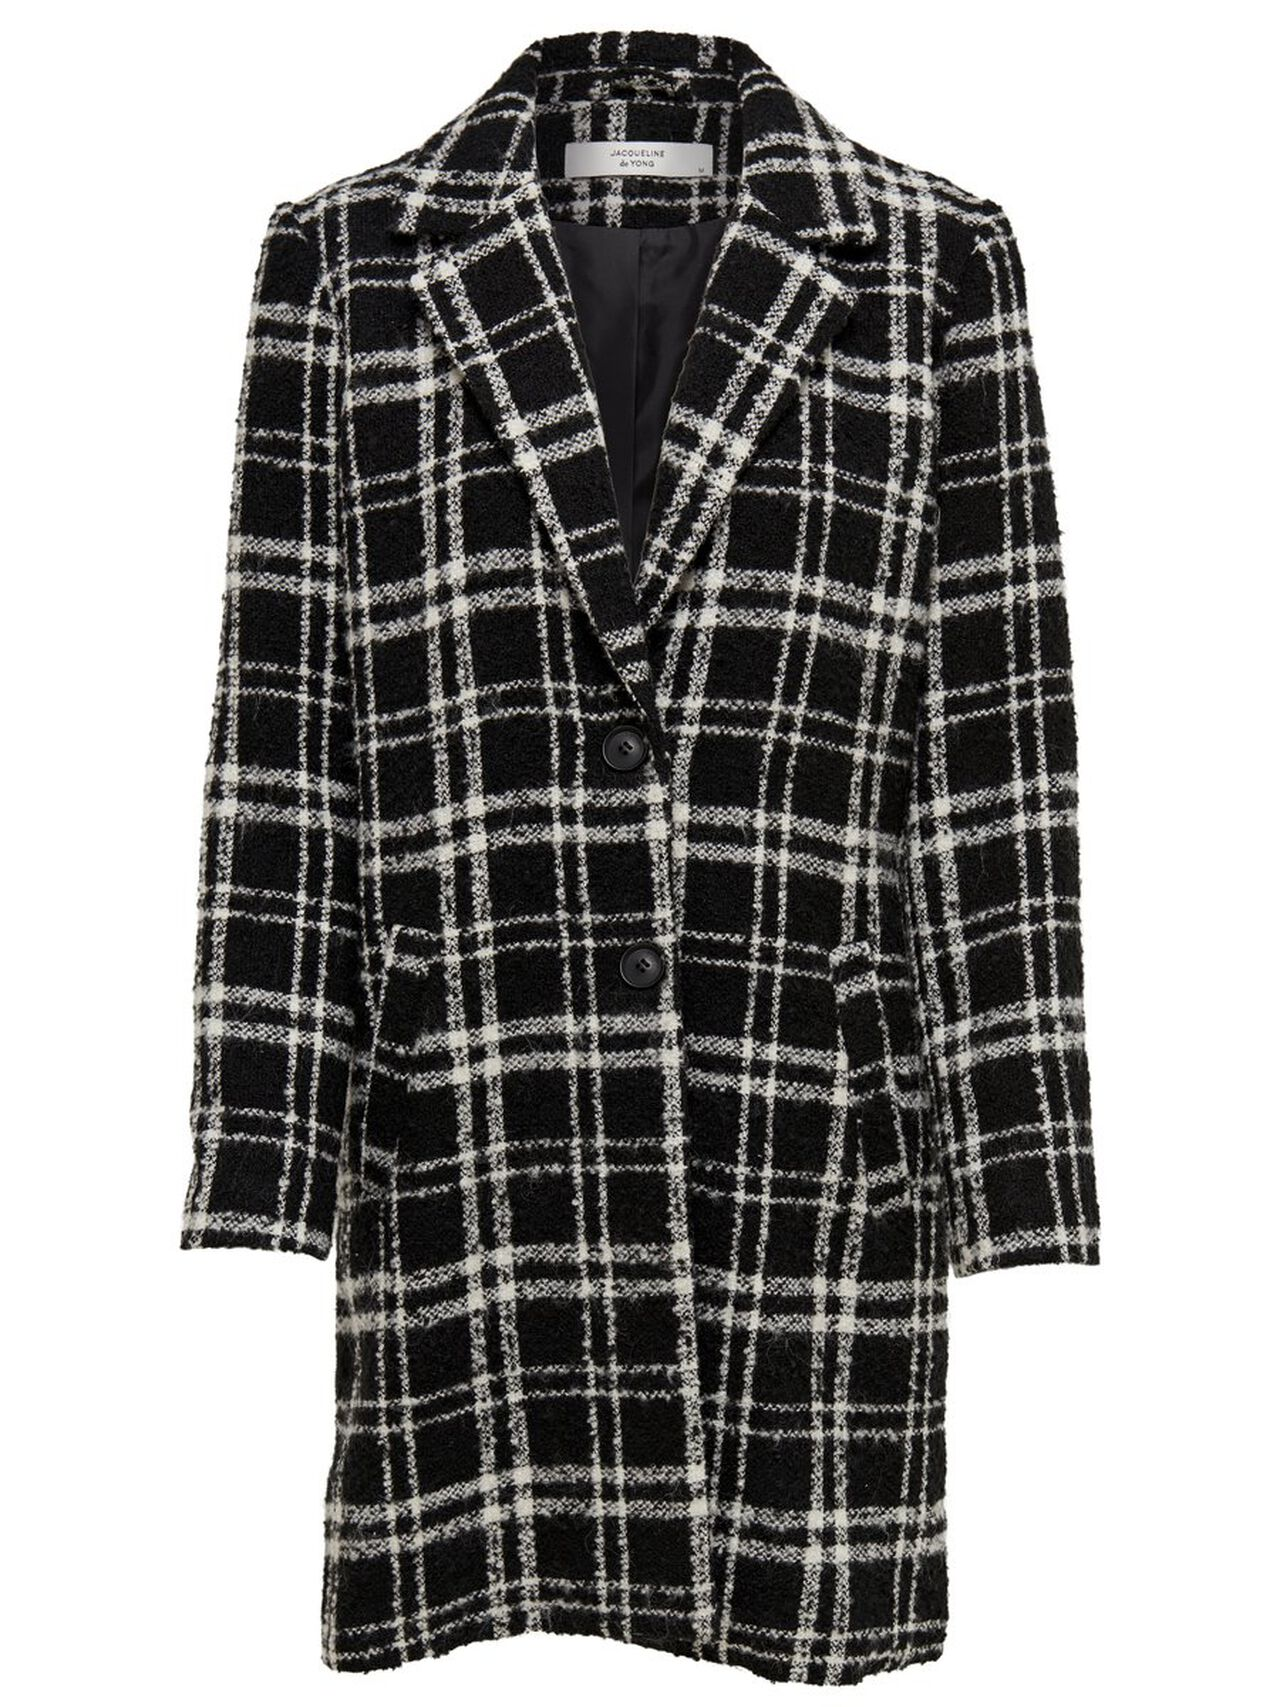 ONLY Checked Jacket Women Black